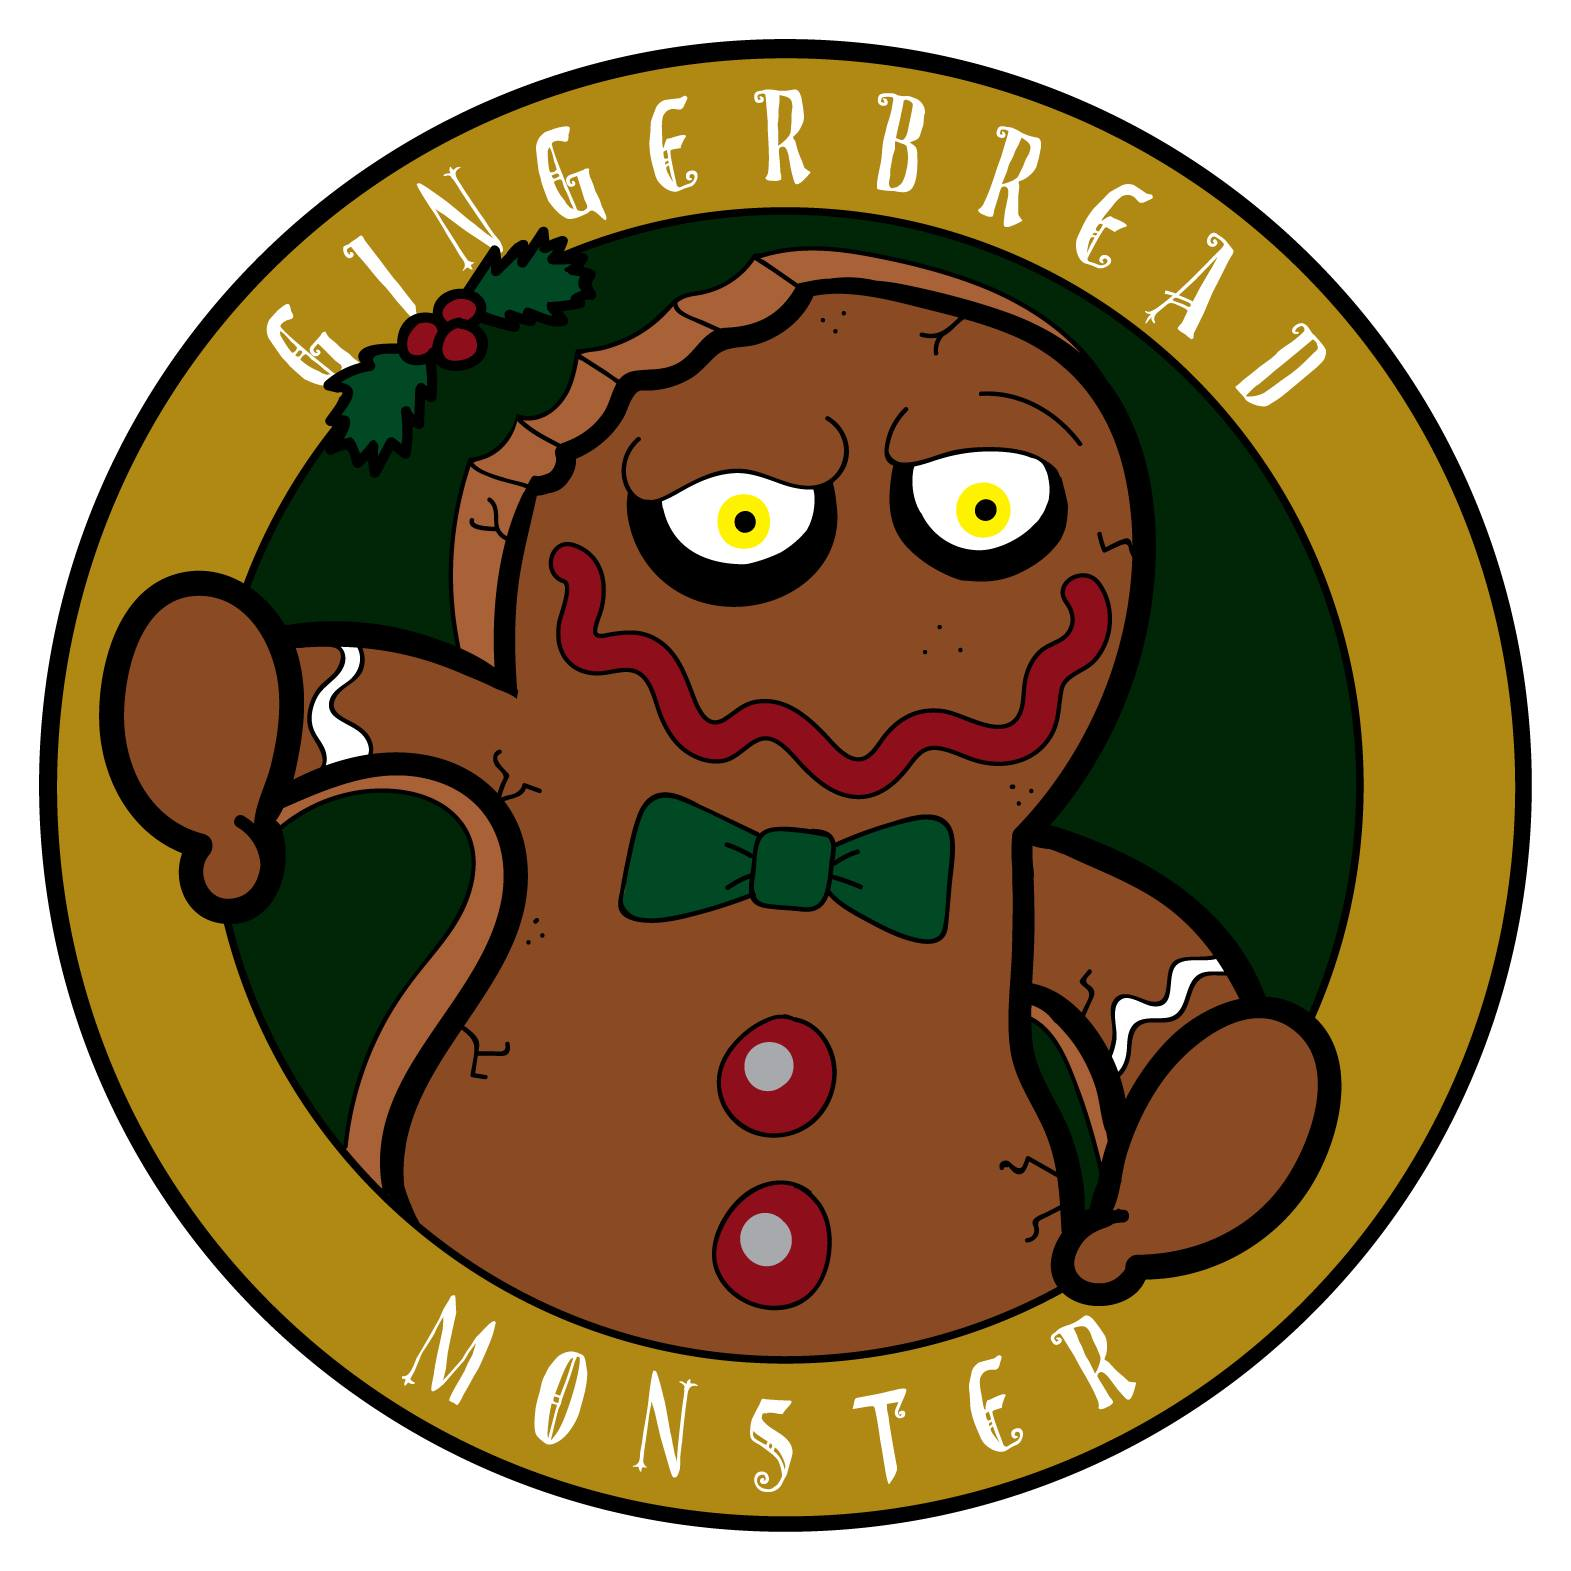 GingerBread Moster.jpg